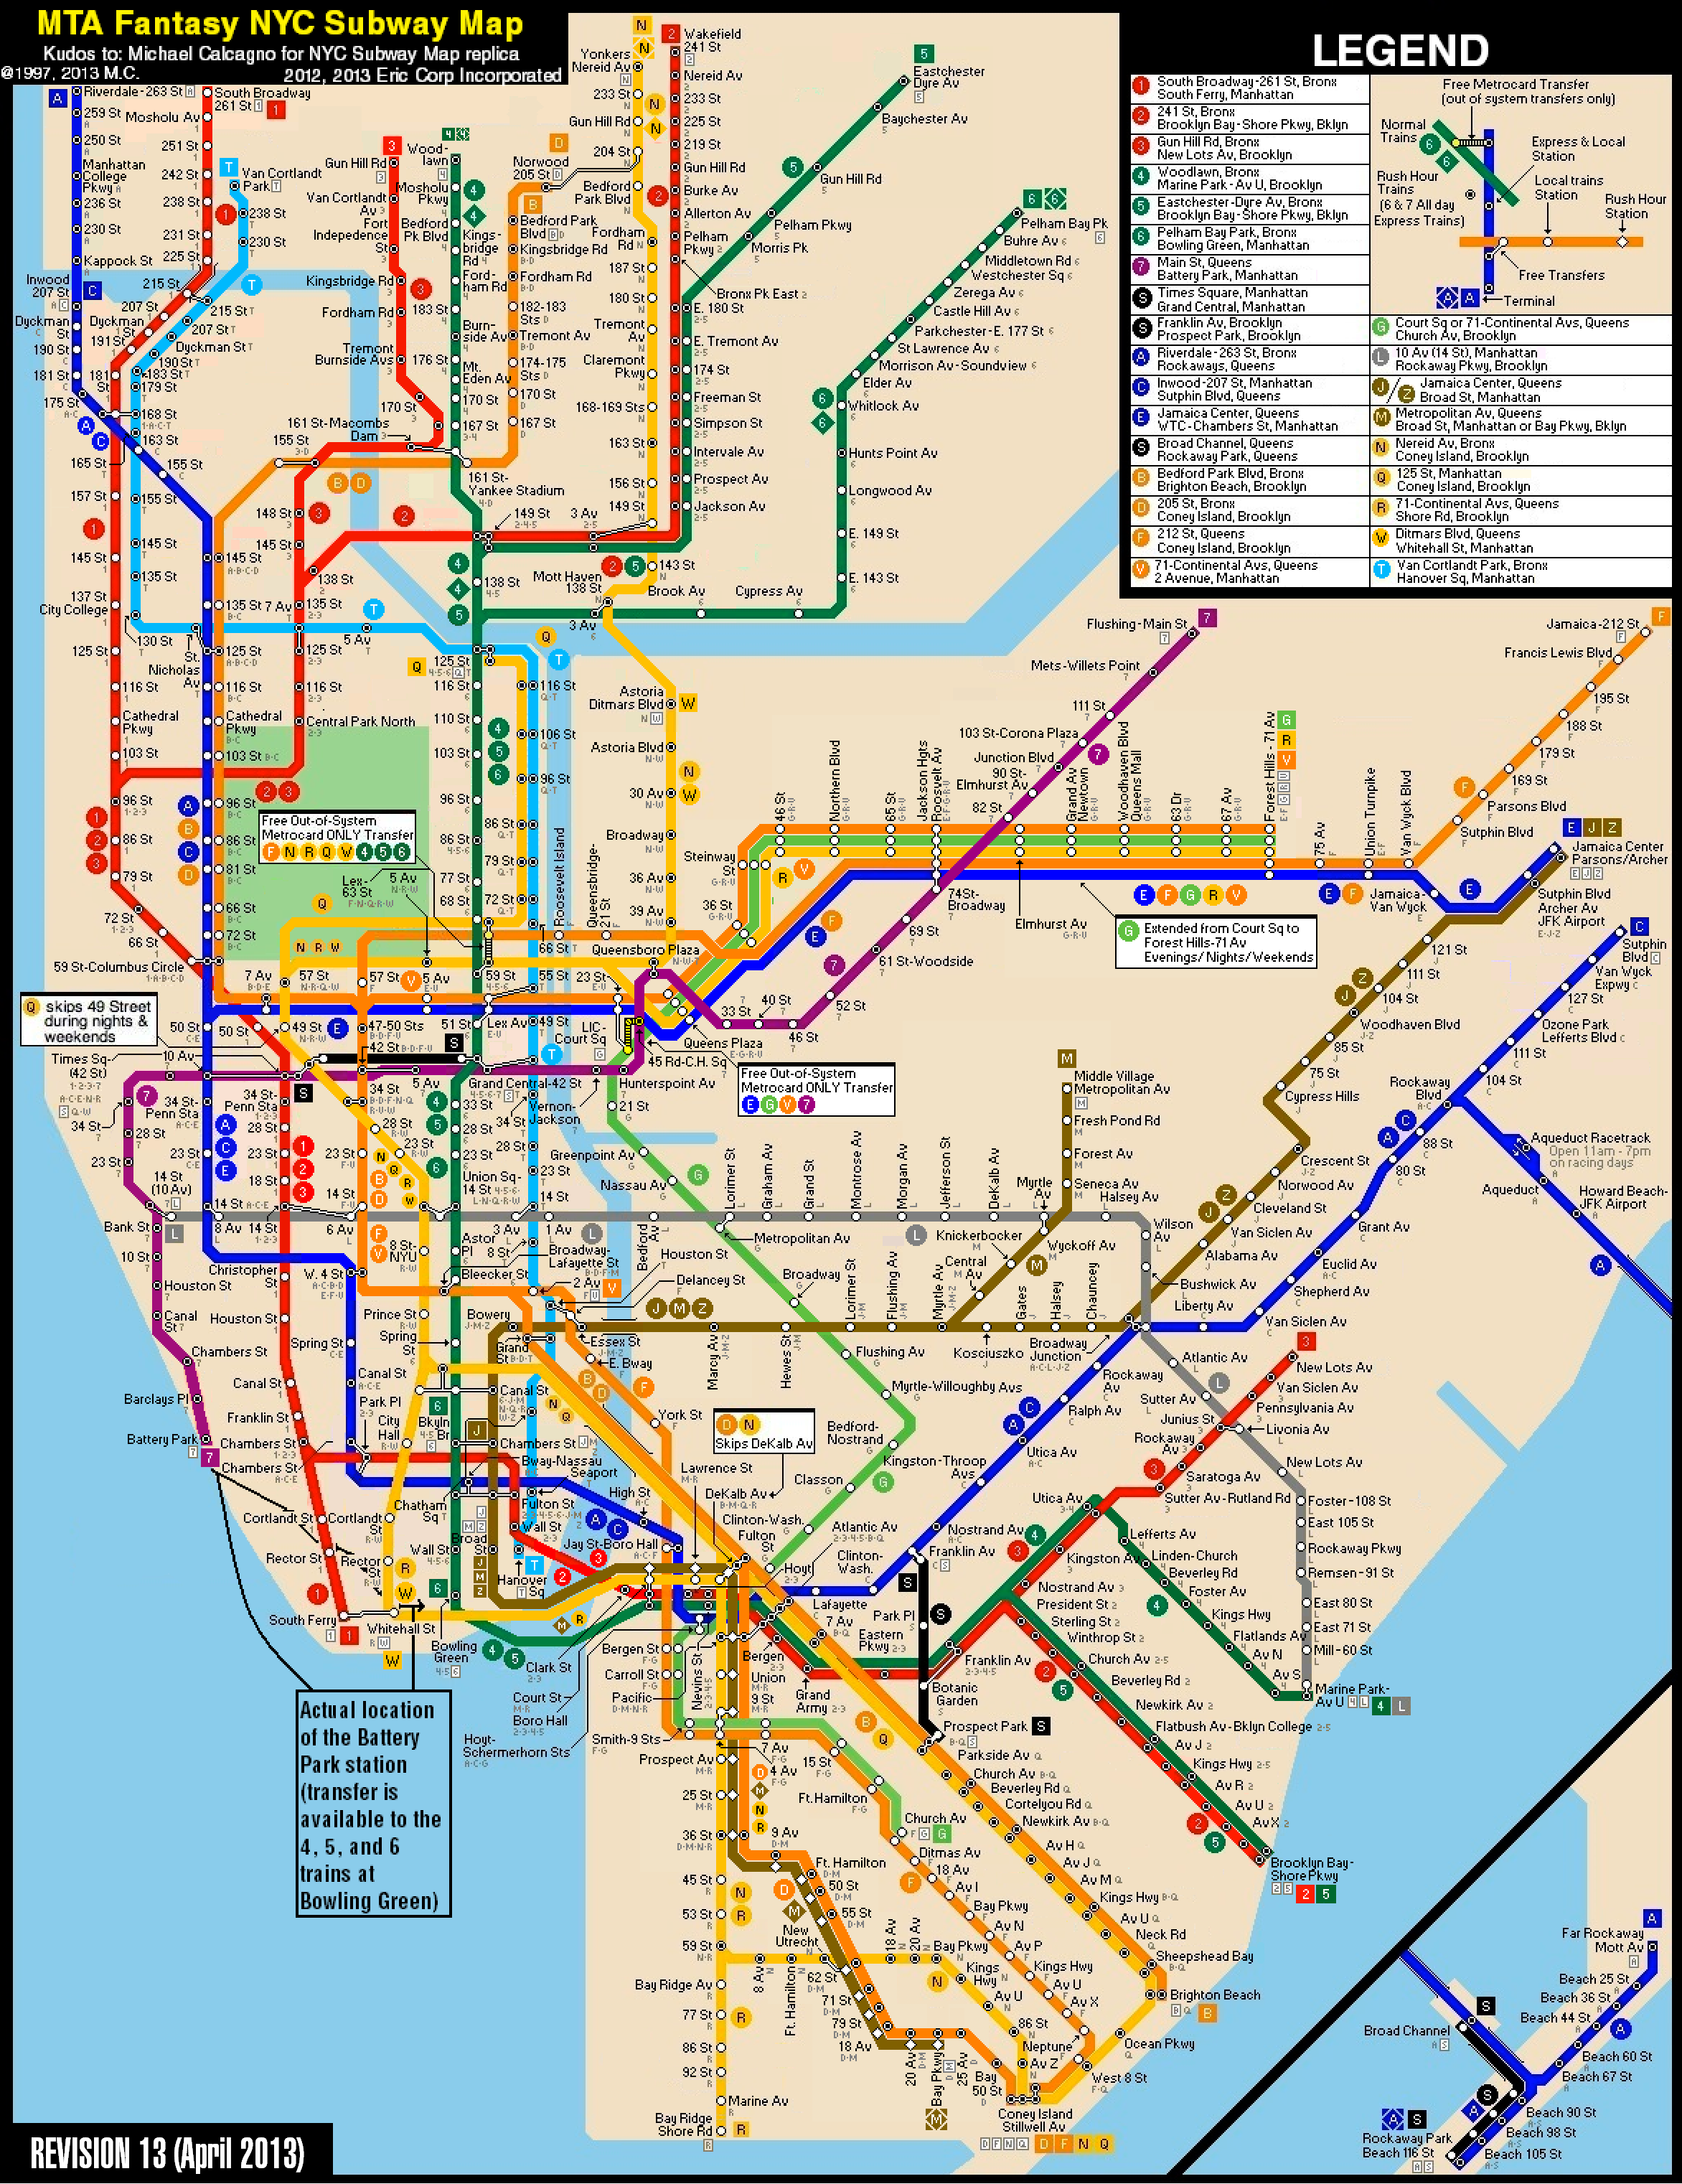 new york city subway fantasy map revision 13 by ecinc2 on